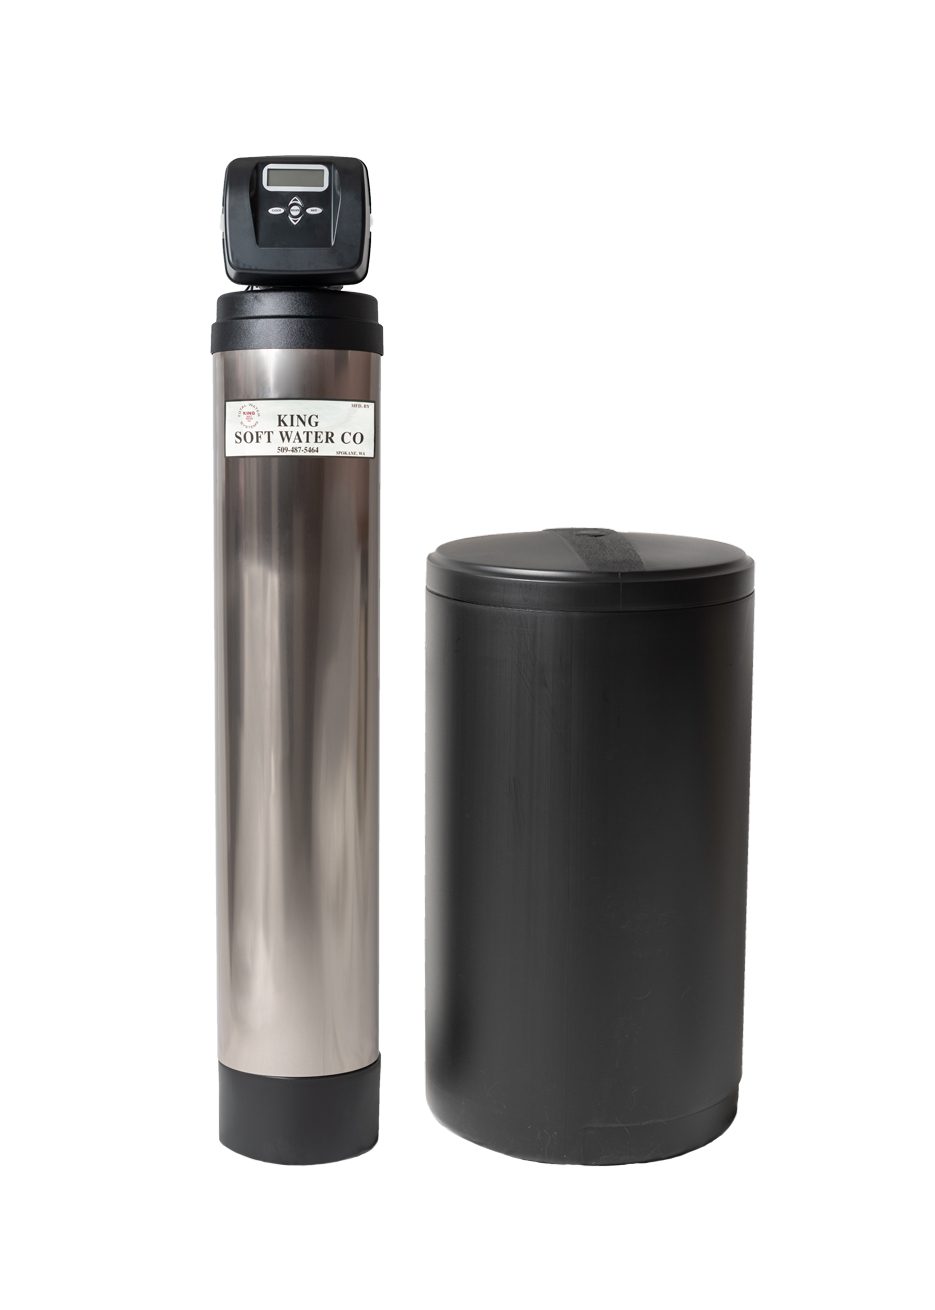 KING GM SERIES - High Efficiency Water Softener - FEATURES:· Made in the U.S.A.· True 1